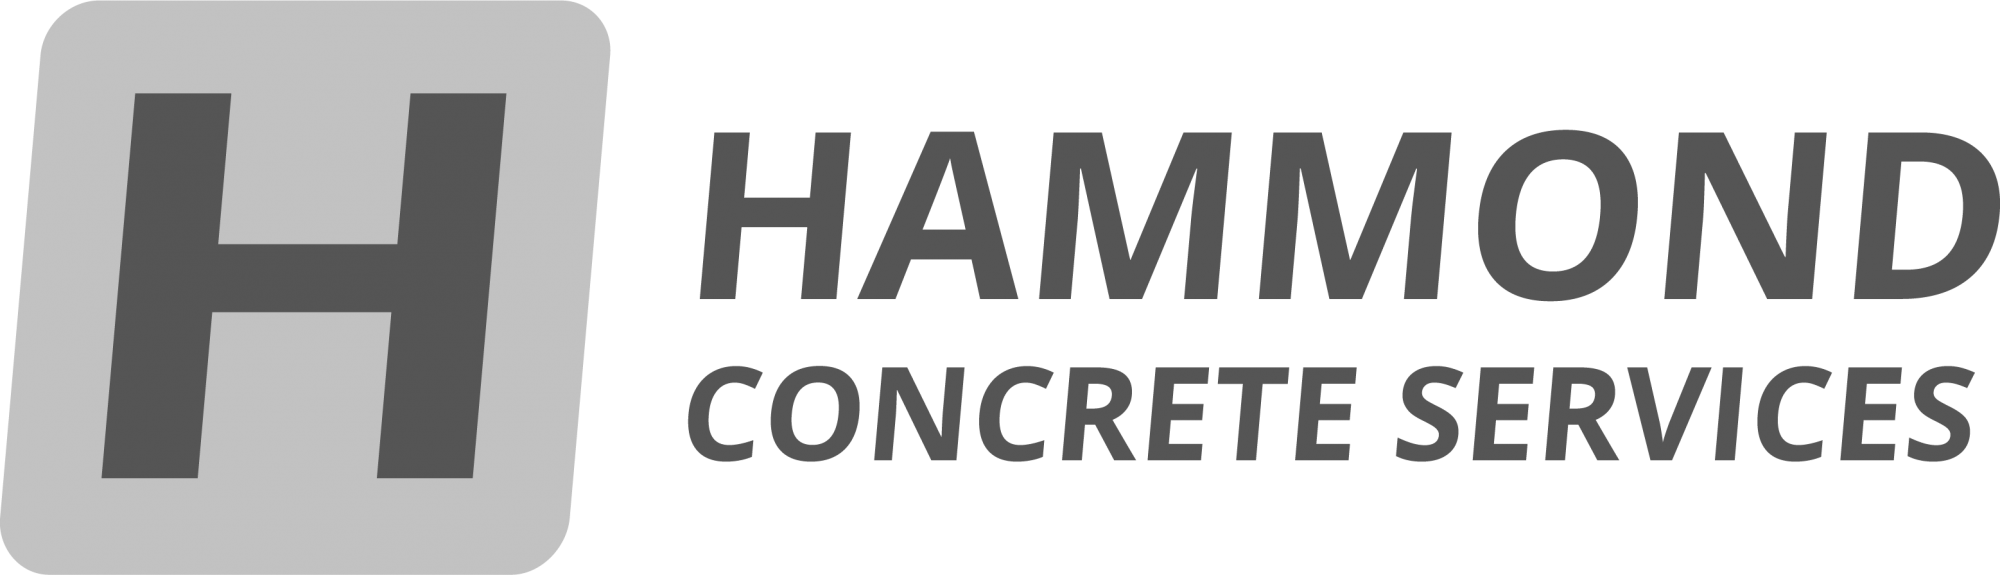 Hammond Concrete